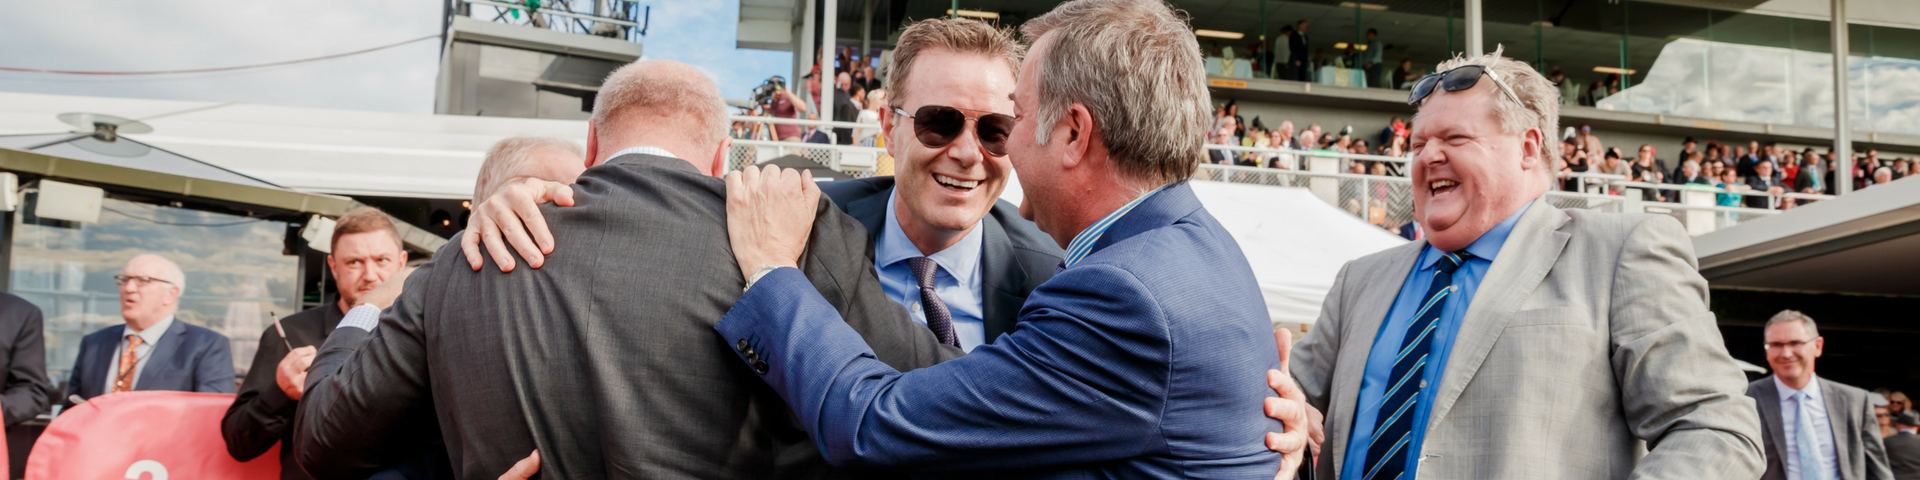 Brisbane Racing Club Owners Image